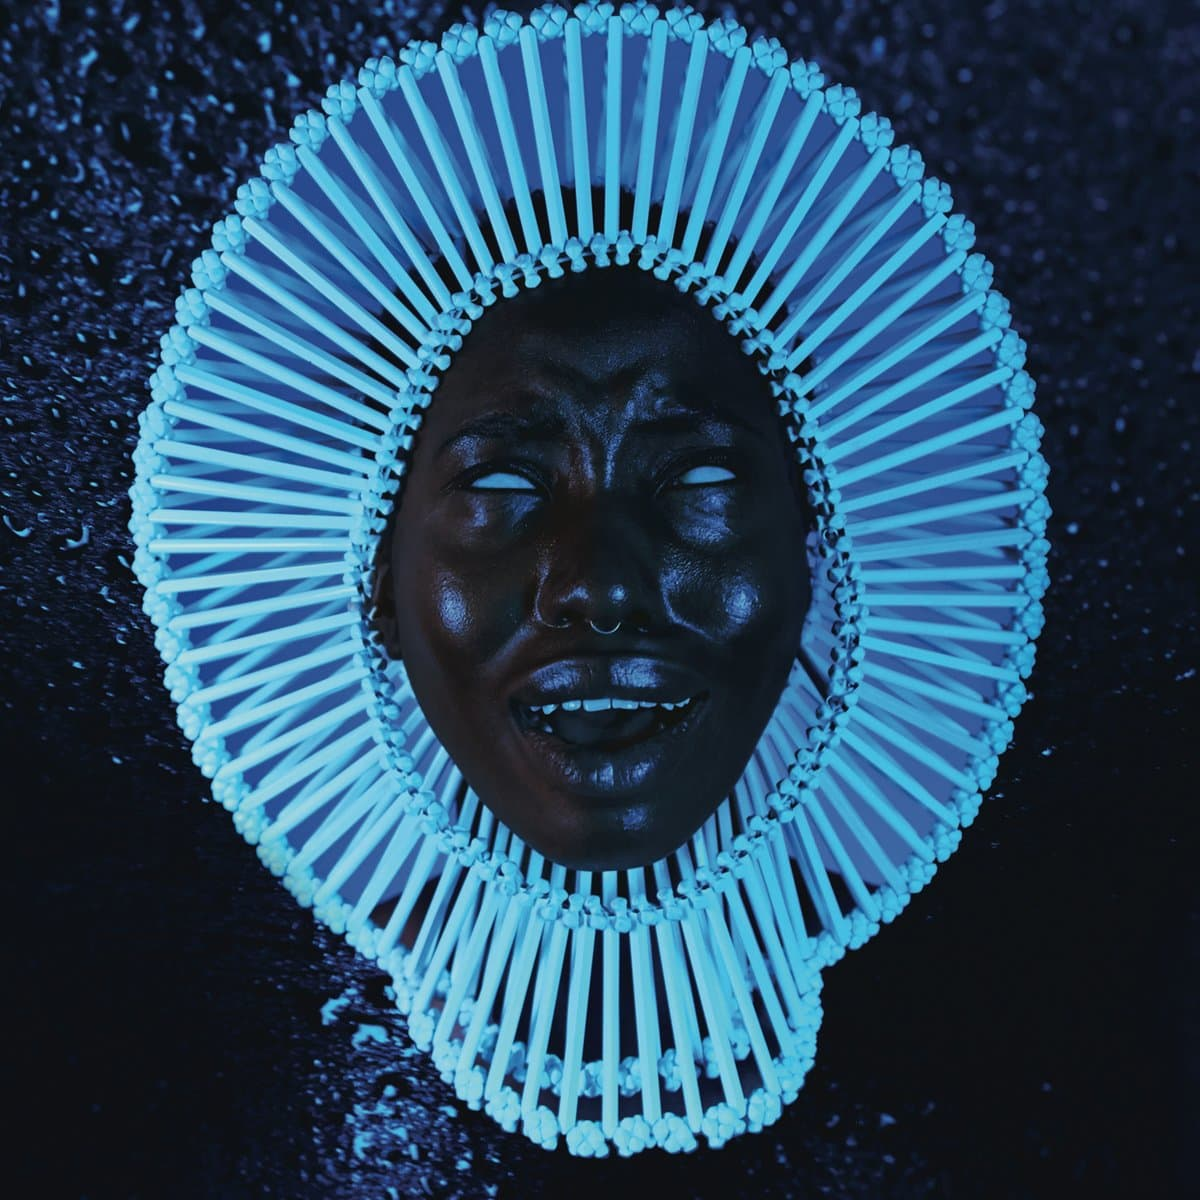 childish-gambino-awaken-my-love-album-art.jpg